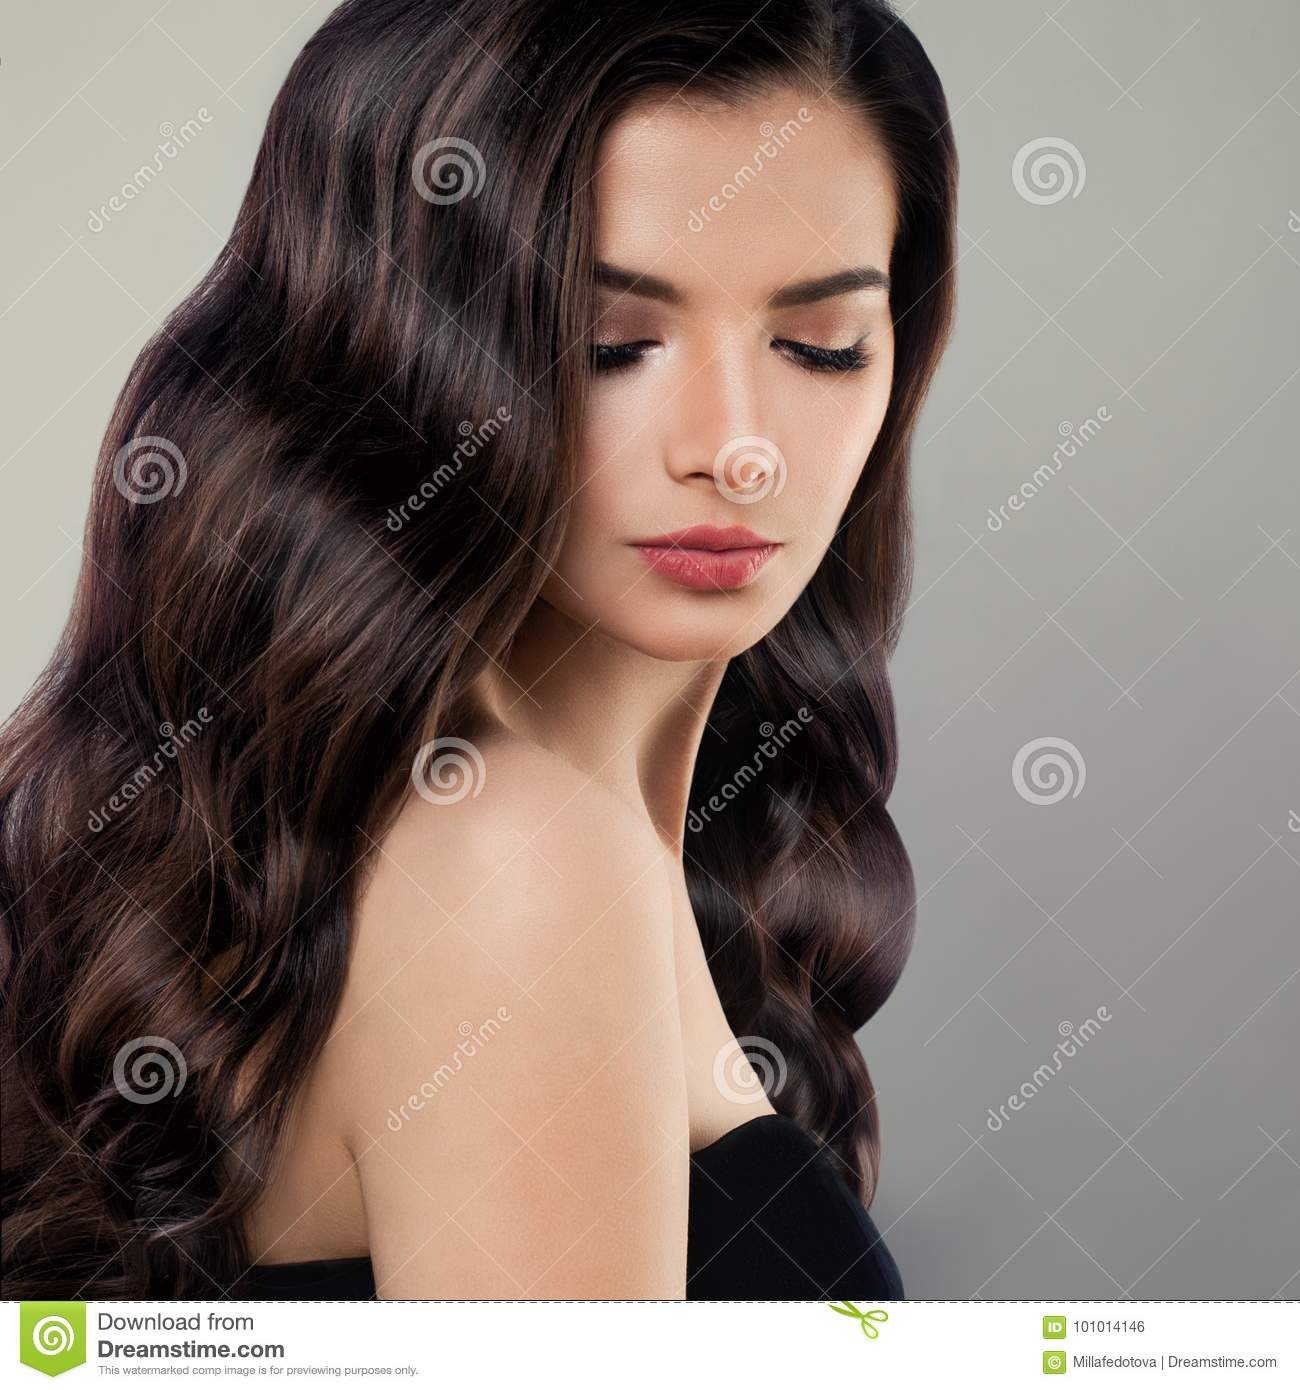 Portrait Of Cute Brunette Woman With Long Hair And Makeup Stock